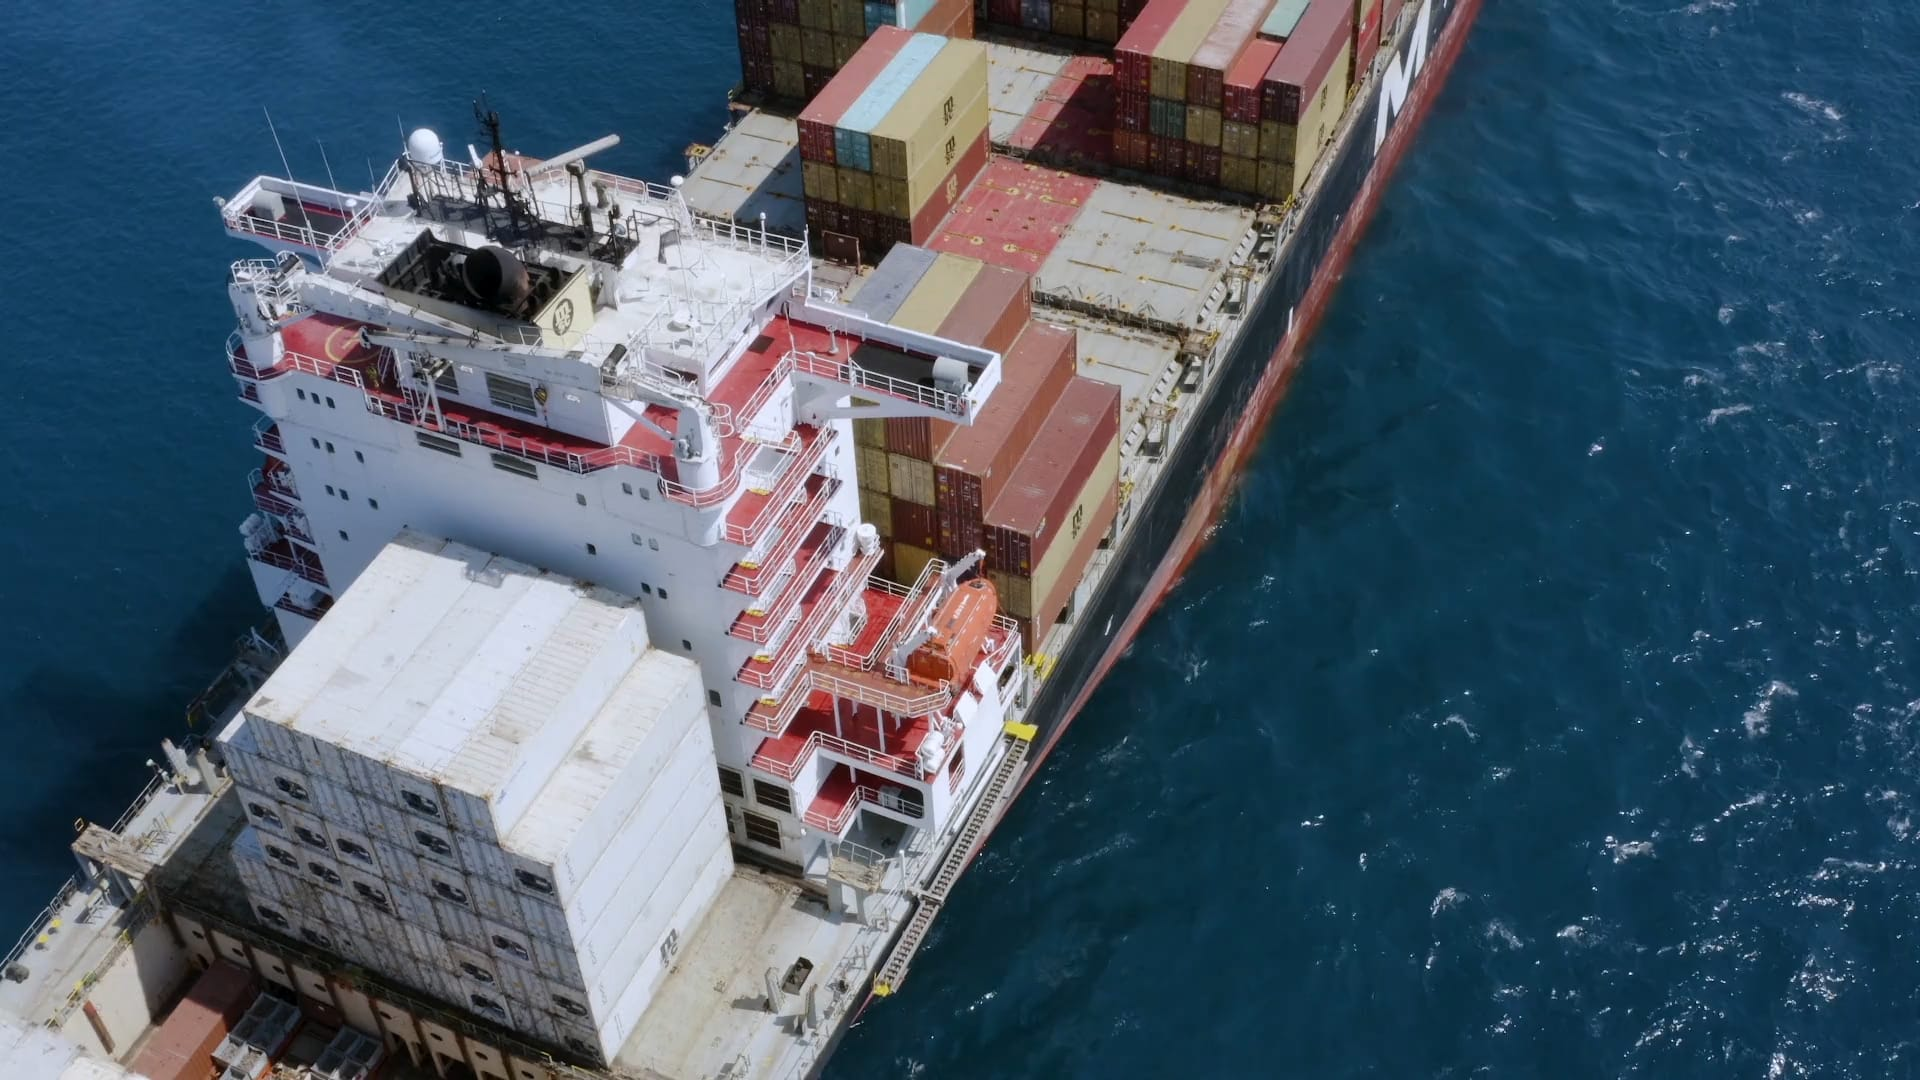 Freight ship on sea